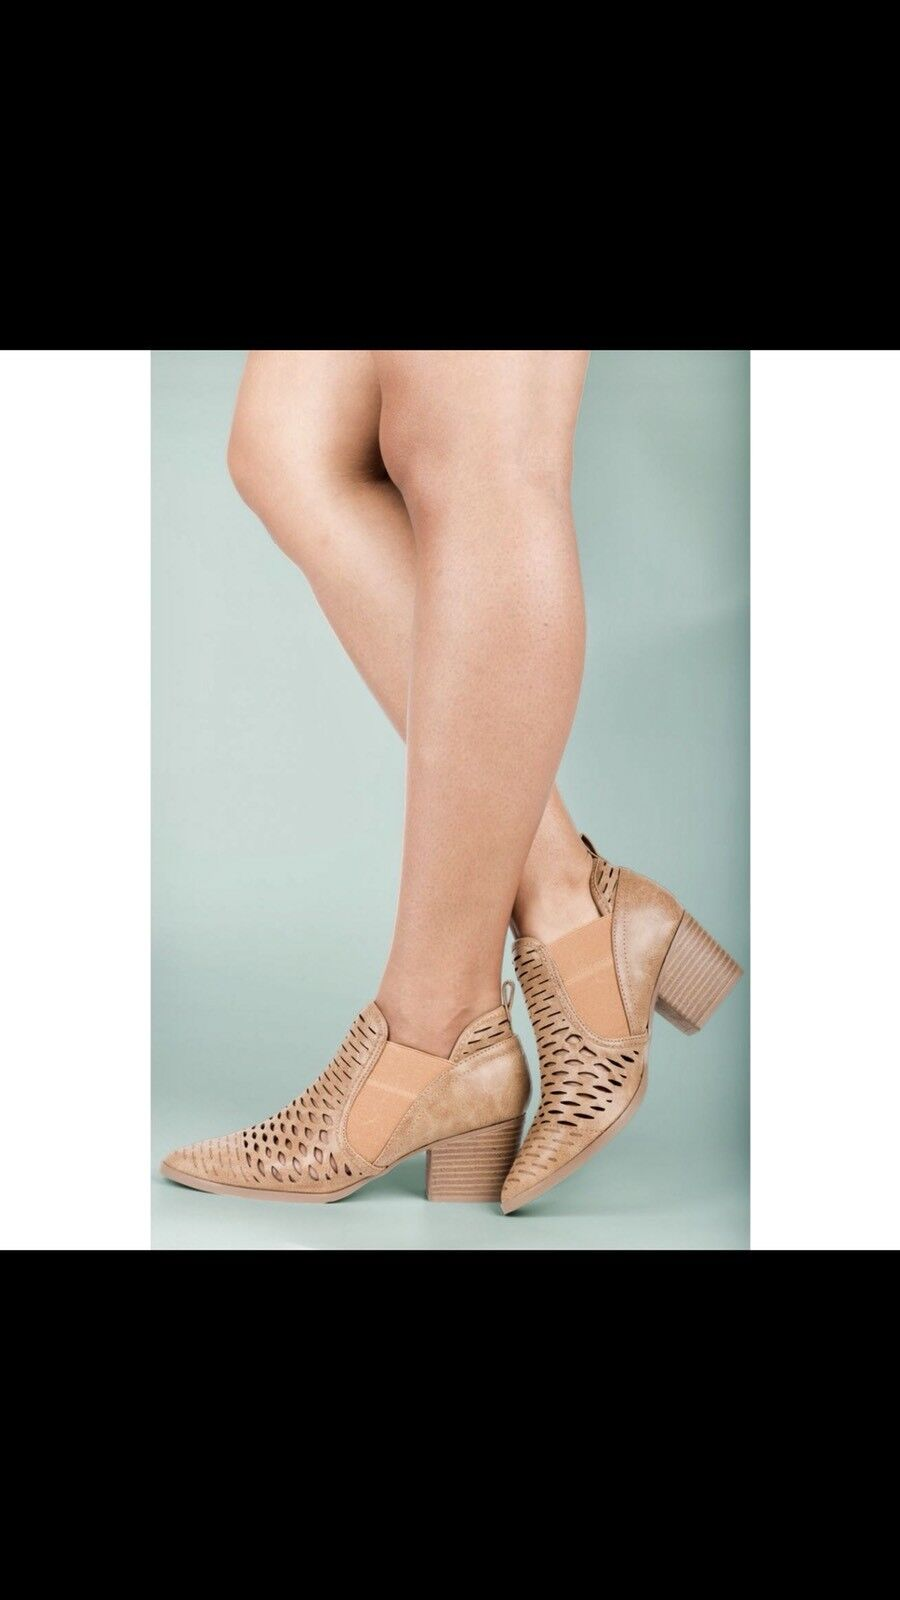 Ladies pointed toe low chunky heels booties. Sizes 5.5,6,6.5,7,7.5,8.5,9,10